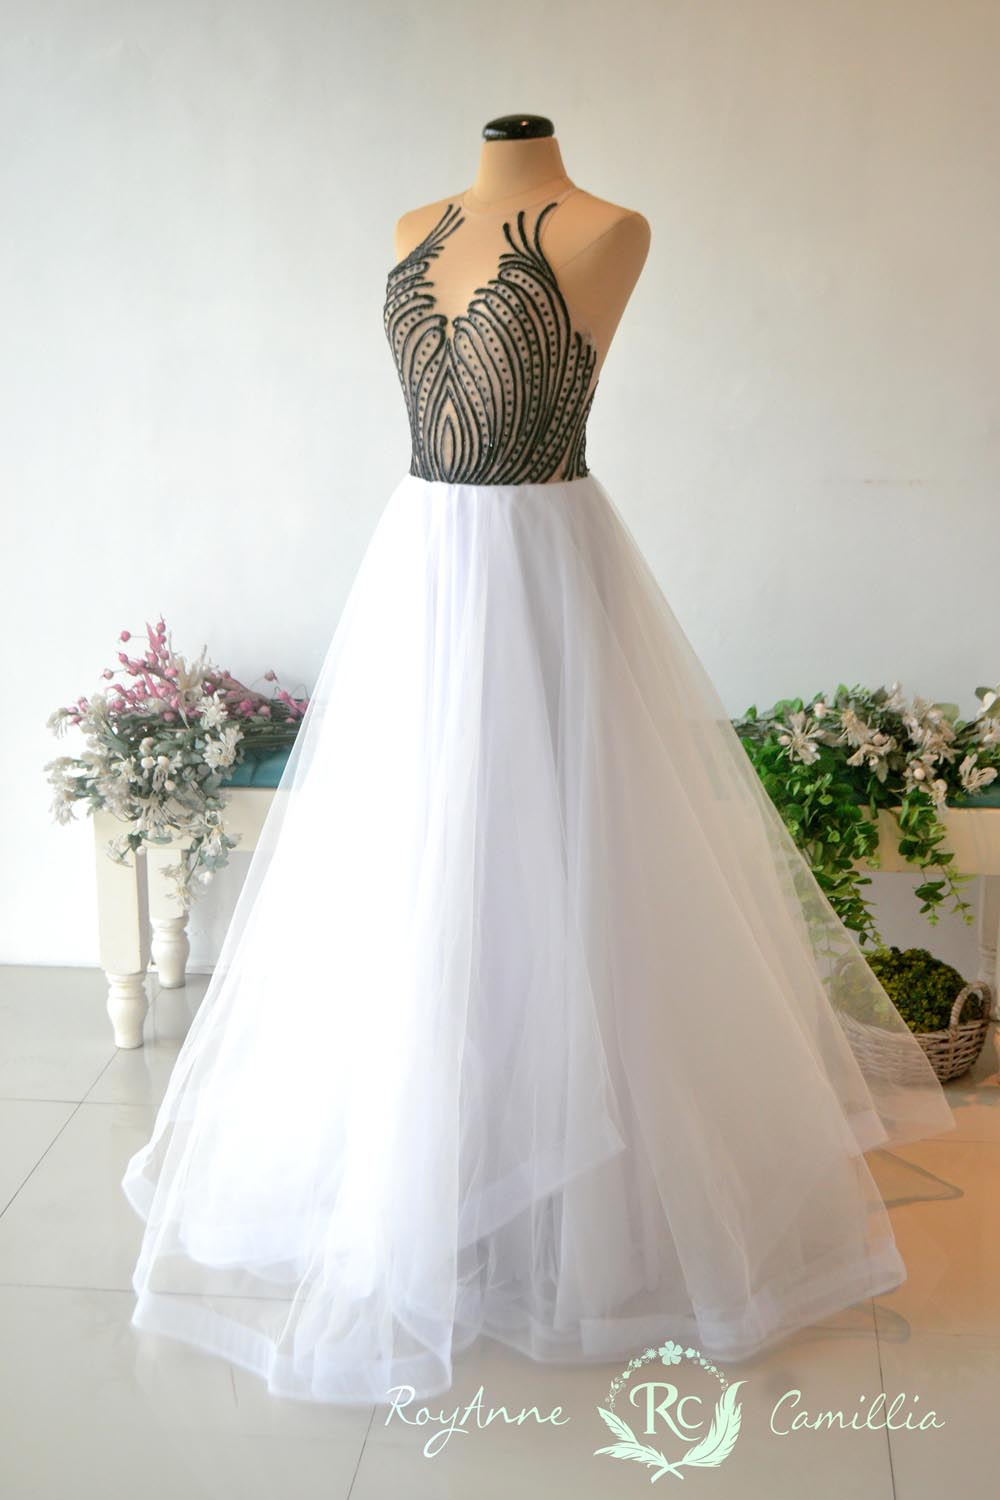 Ashmina royanne camillia couture bridal gowns and gown for Rent for wedding dress